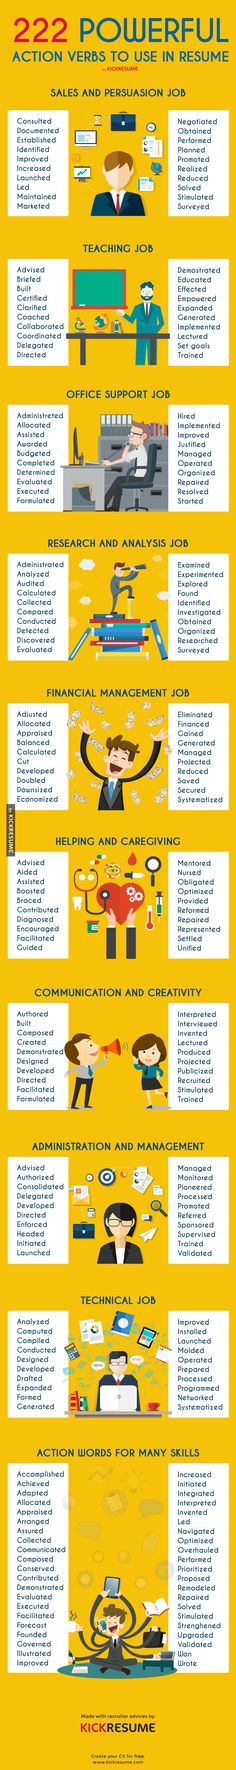 222 Powerful Actions Verbs to Use in Resume job Pinterest - action words to use in a resume